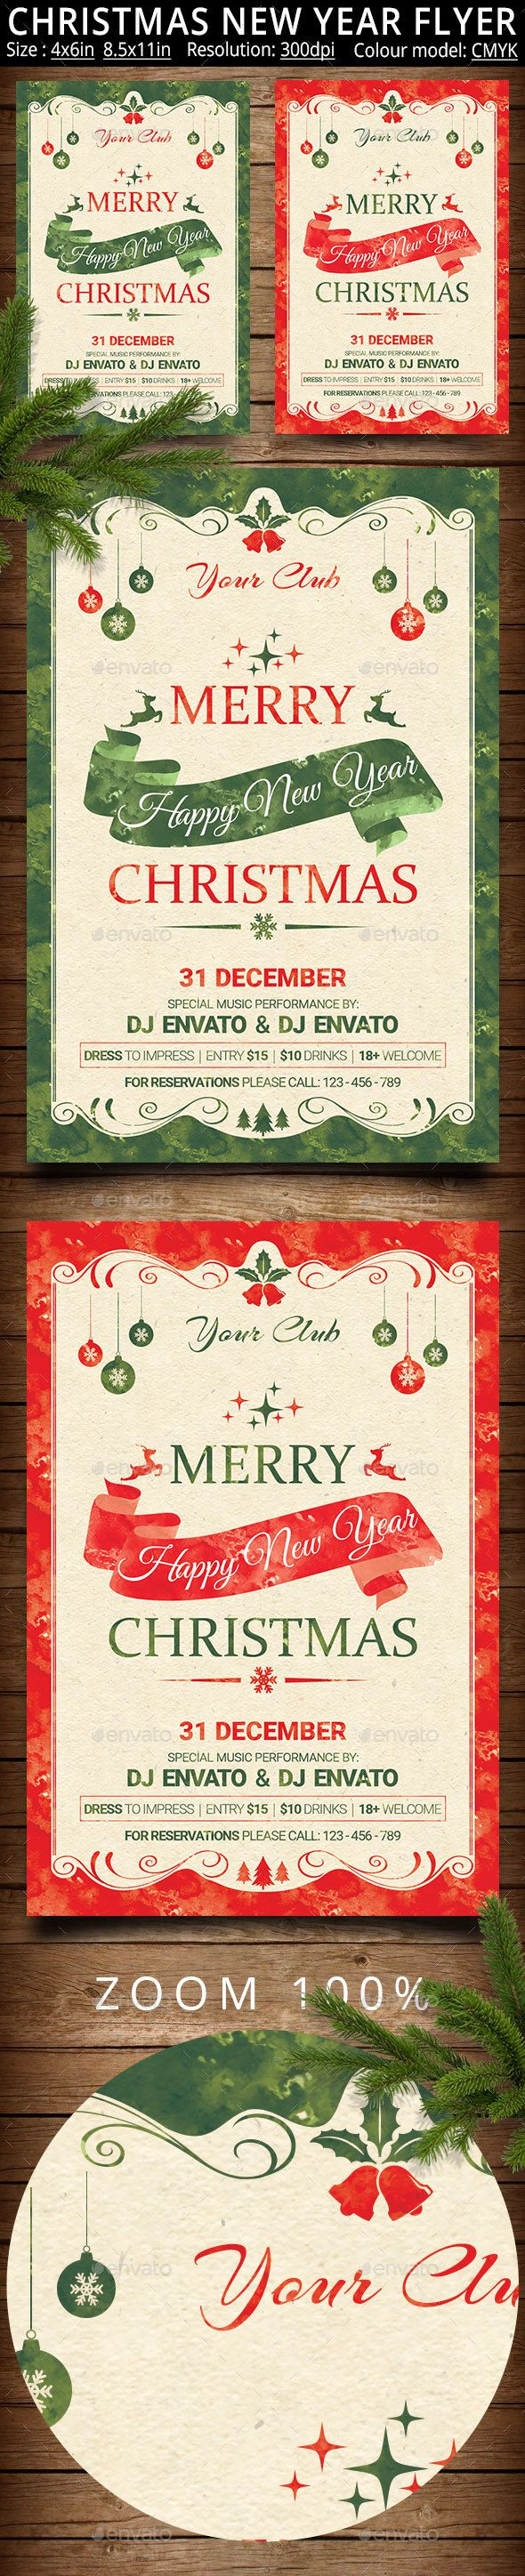 images about  christmas new year party flyer and poster template psd